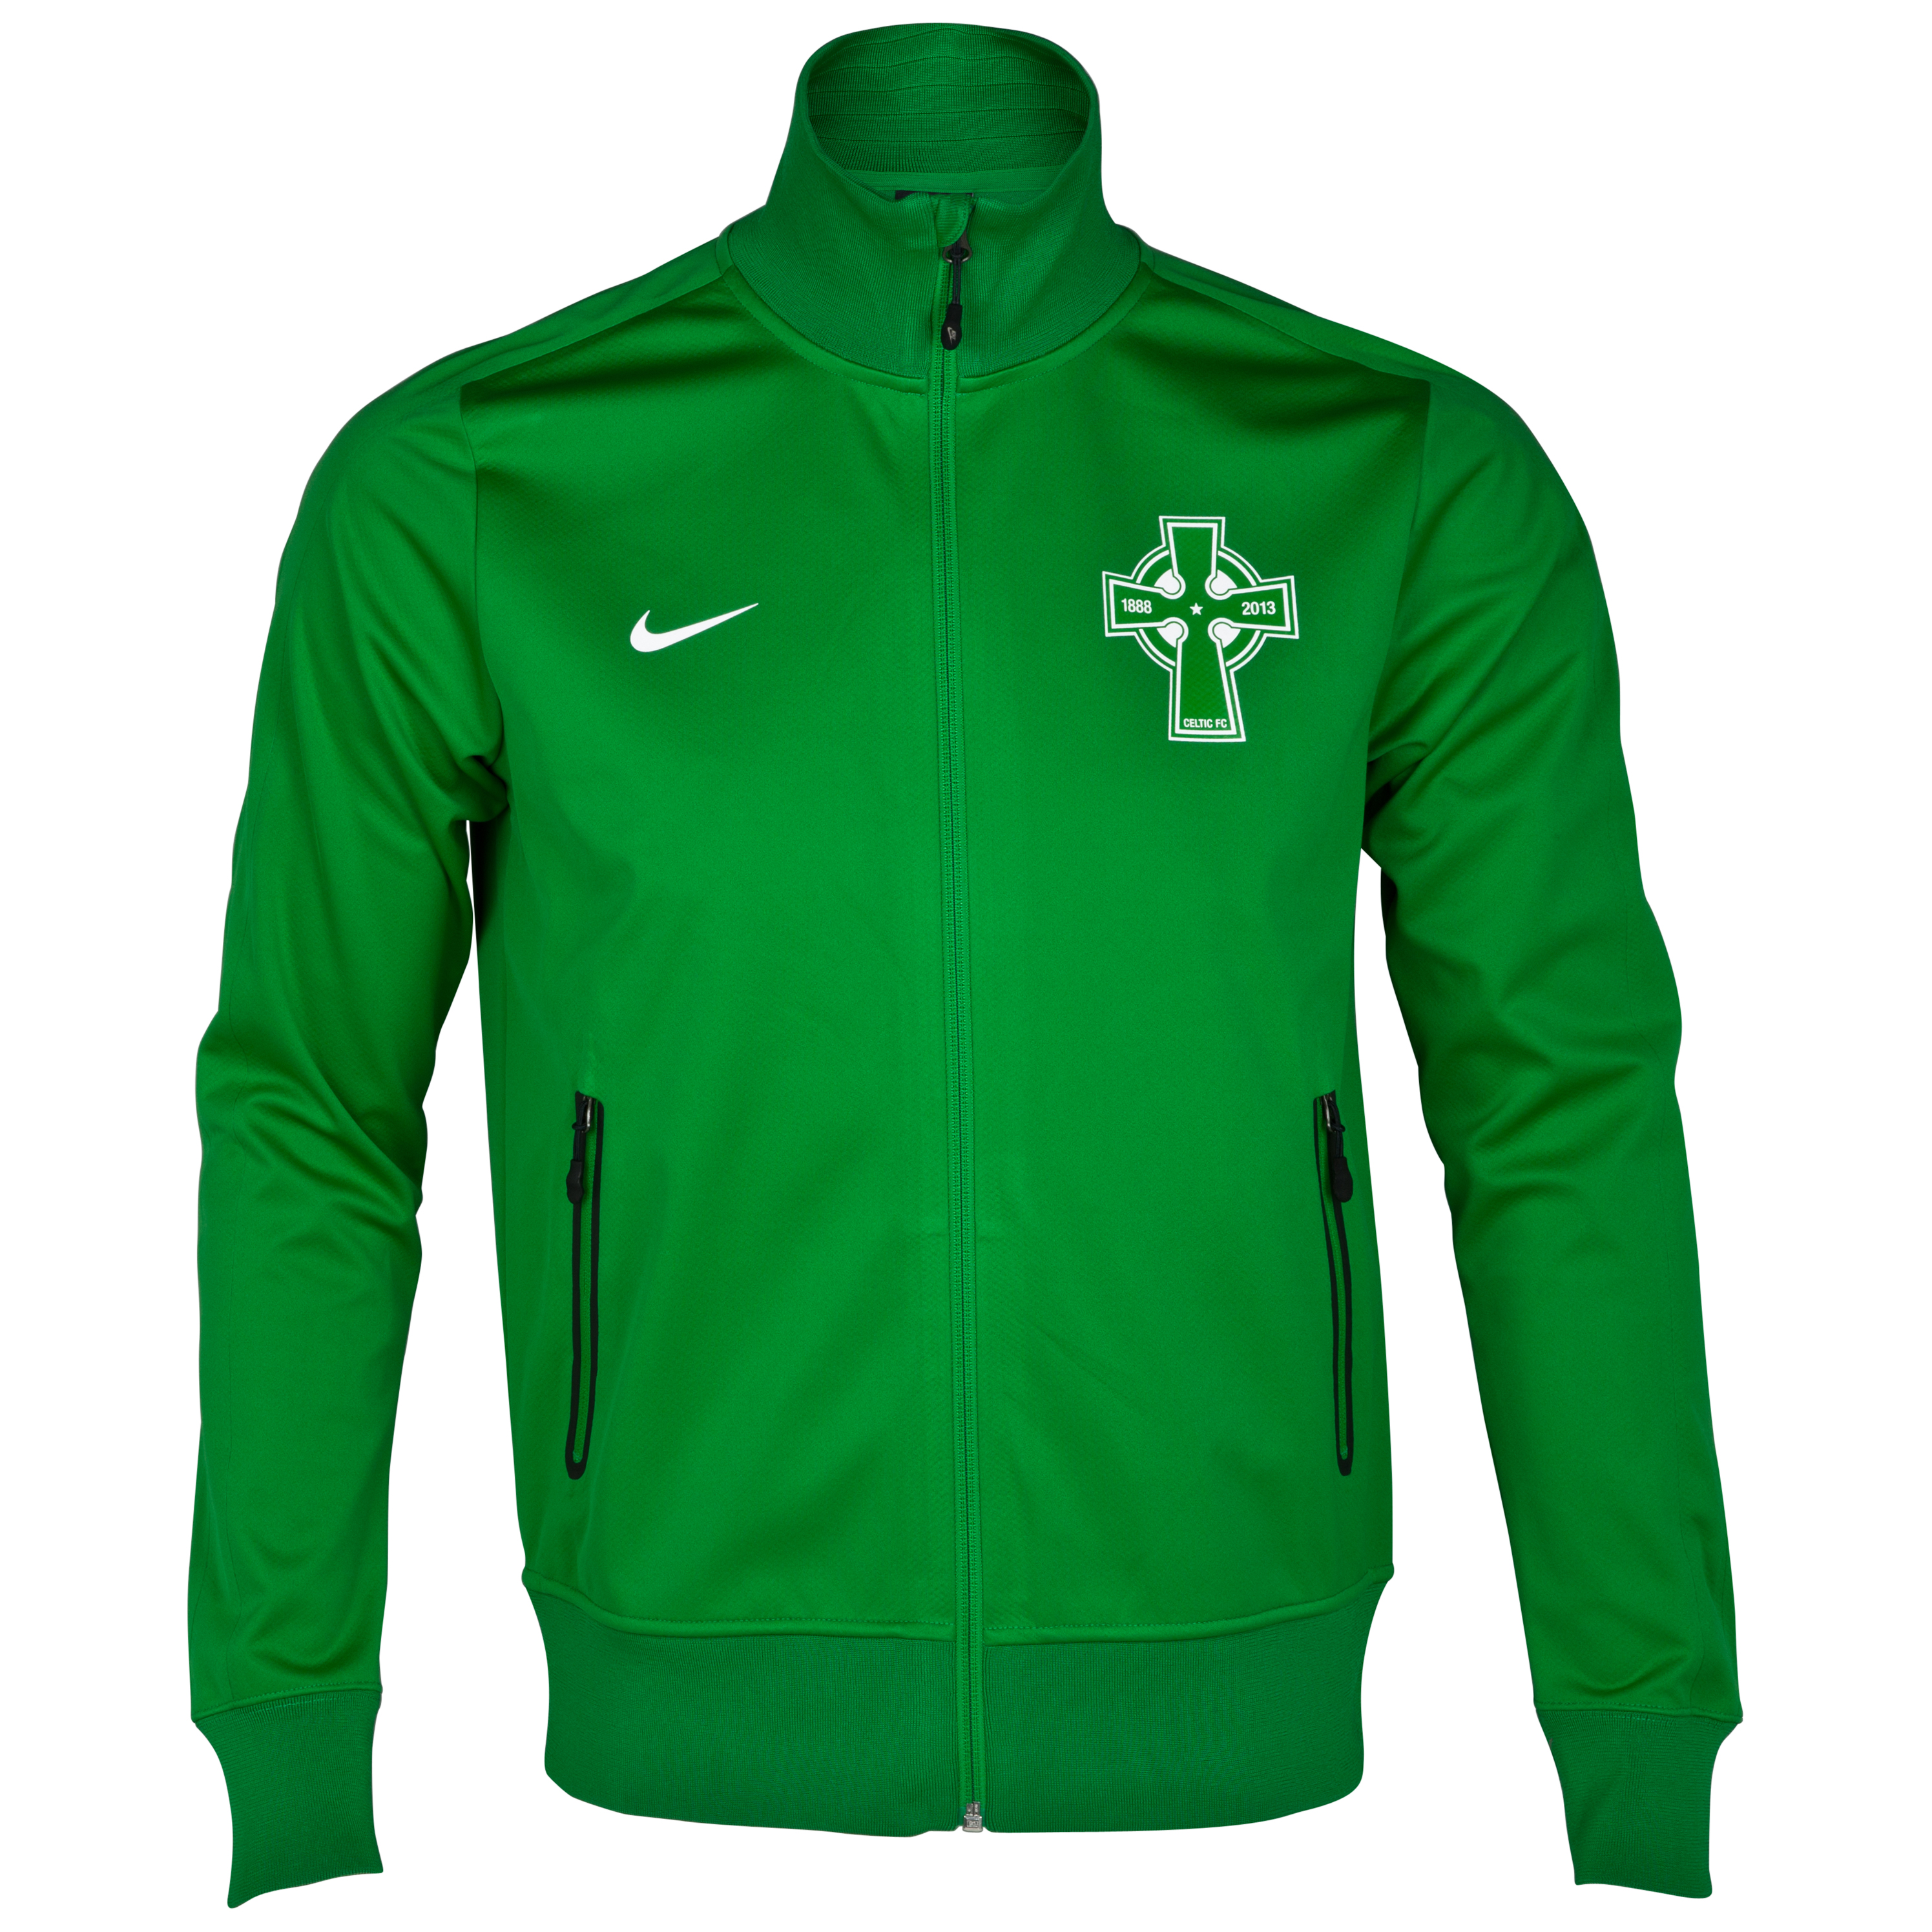 Celtic Authentic UEFA Champions League N98 Jacket - Victory Green/Victory Green/White